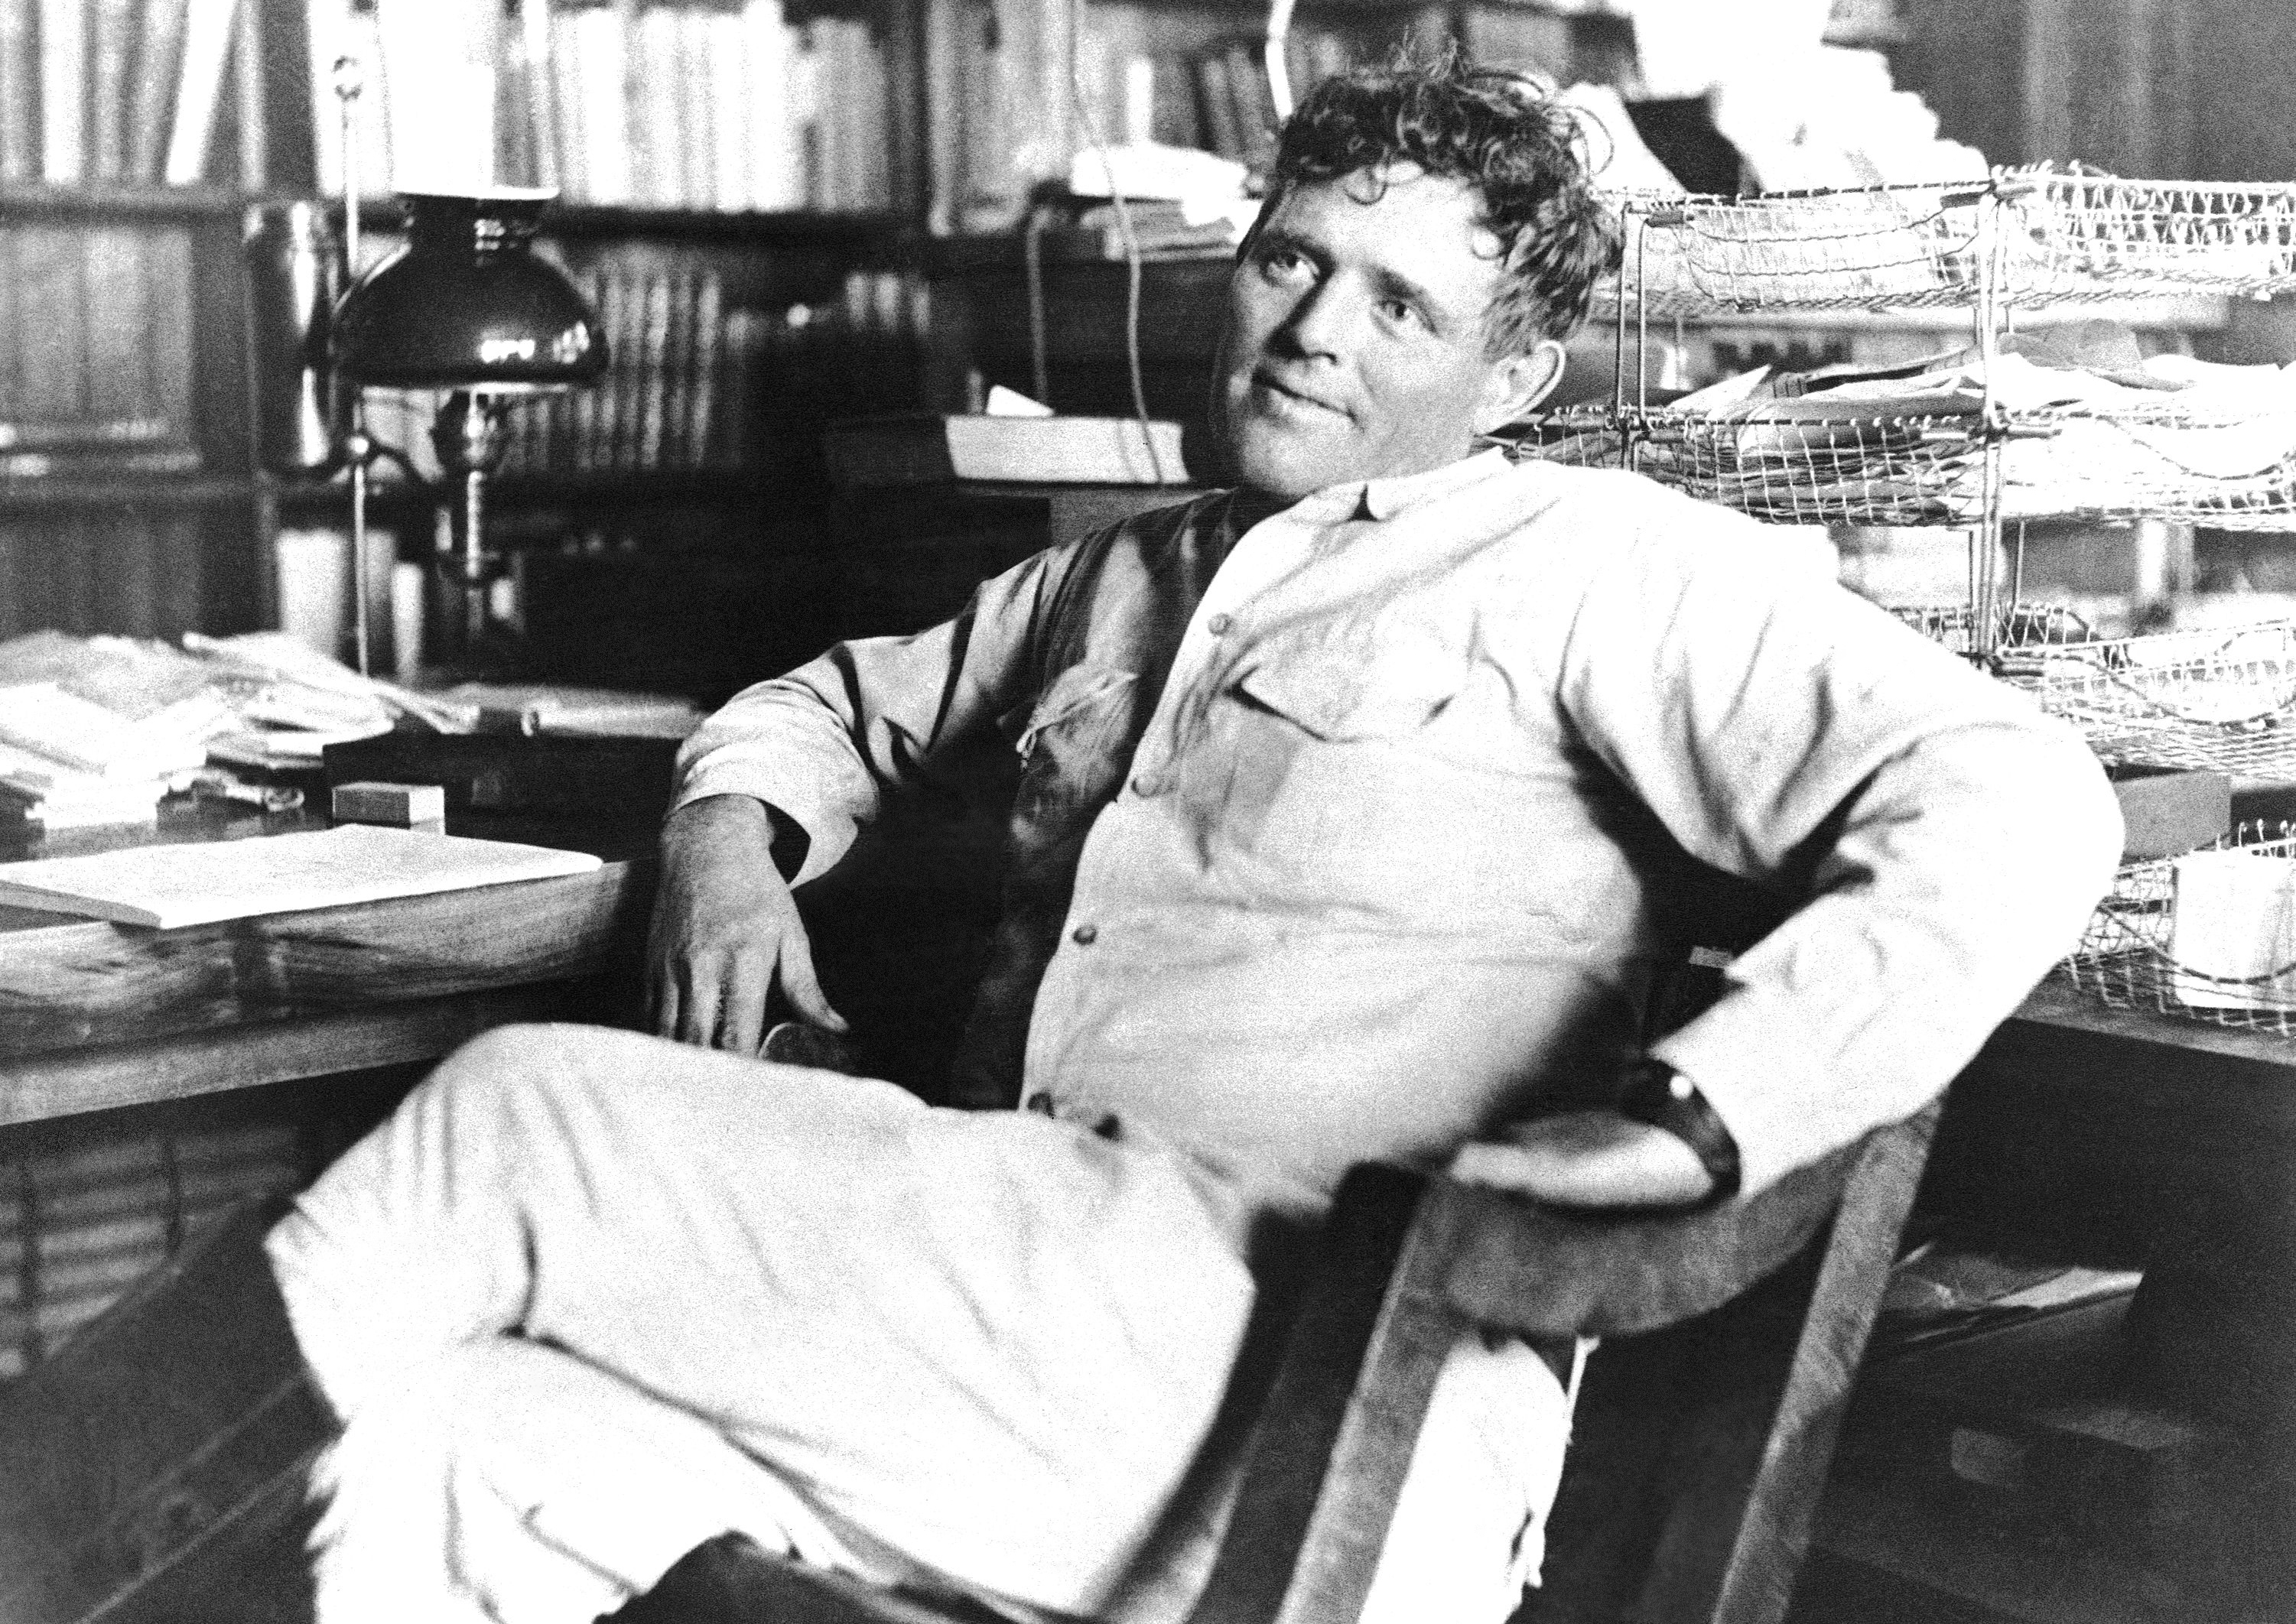 How old was Jack London when he died?